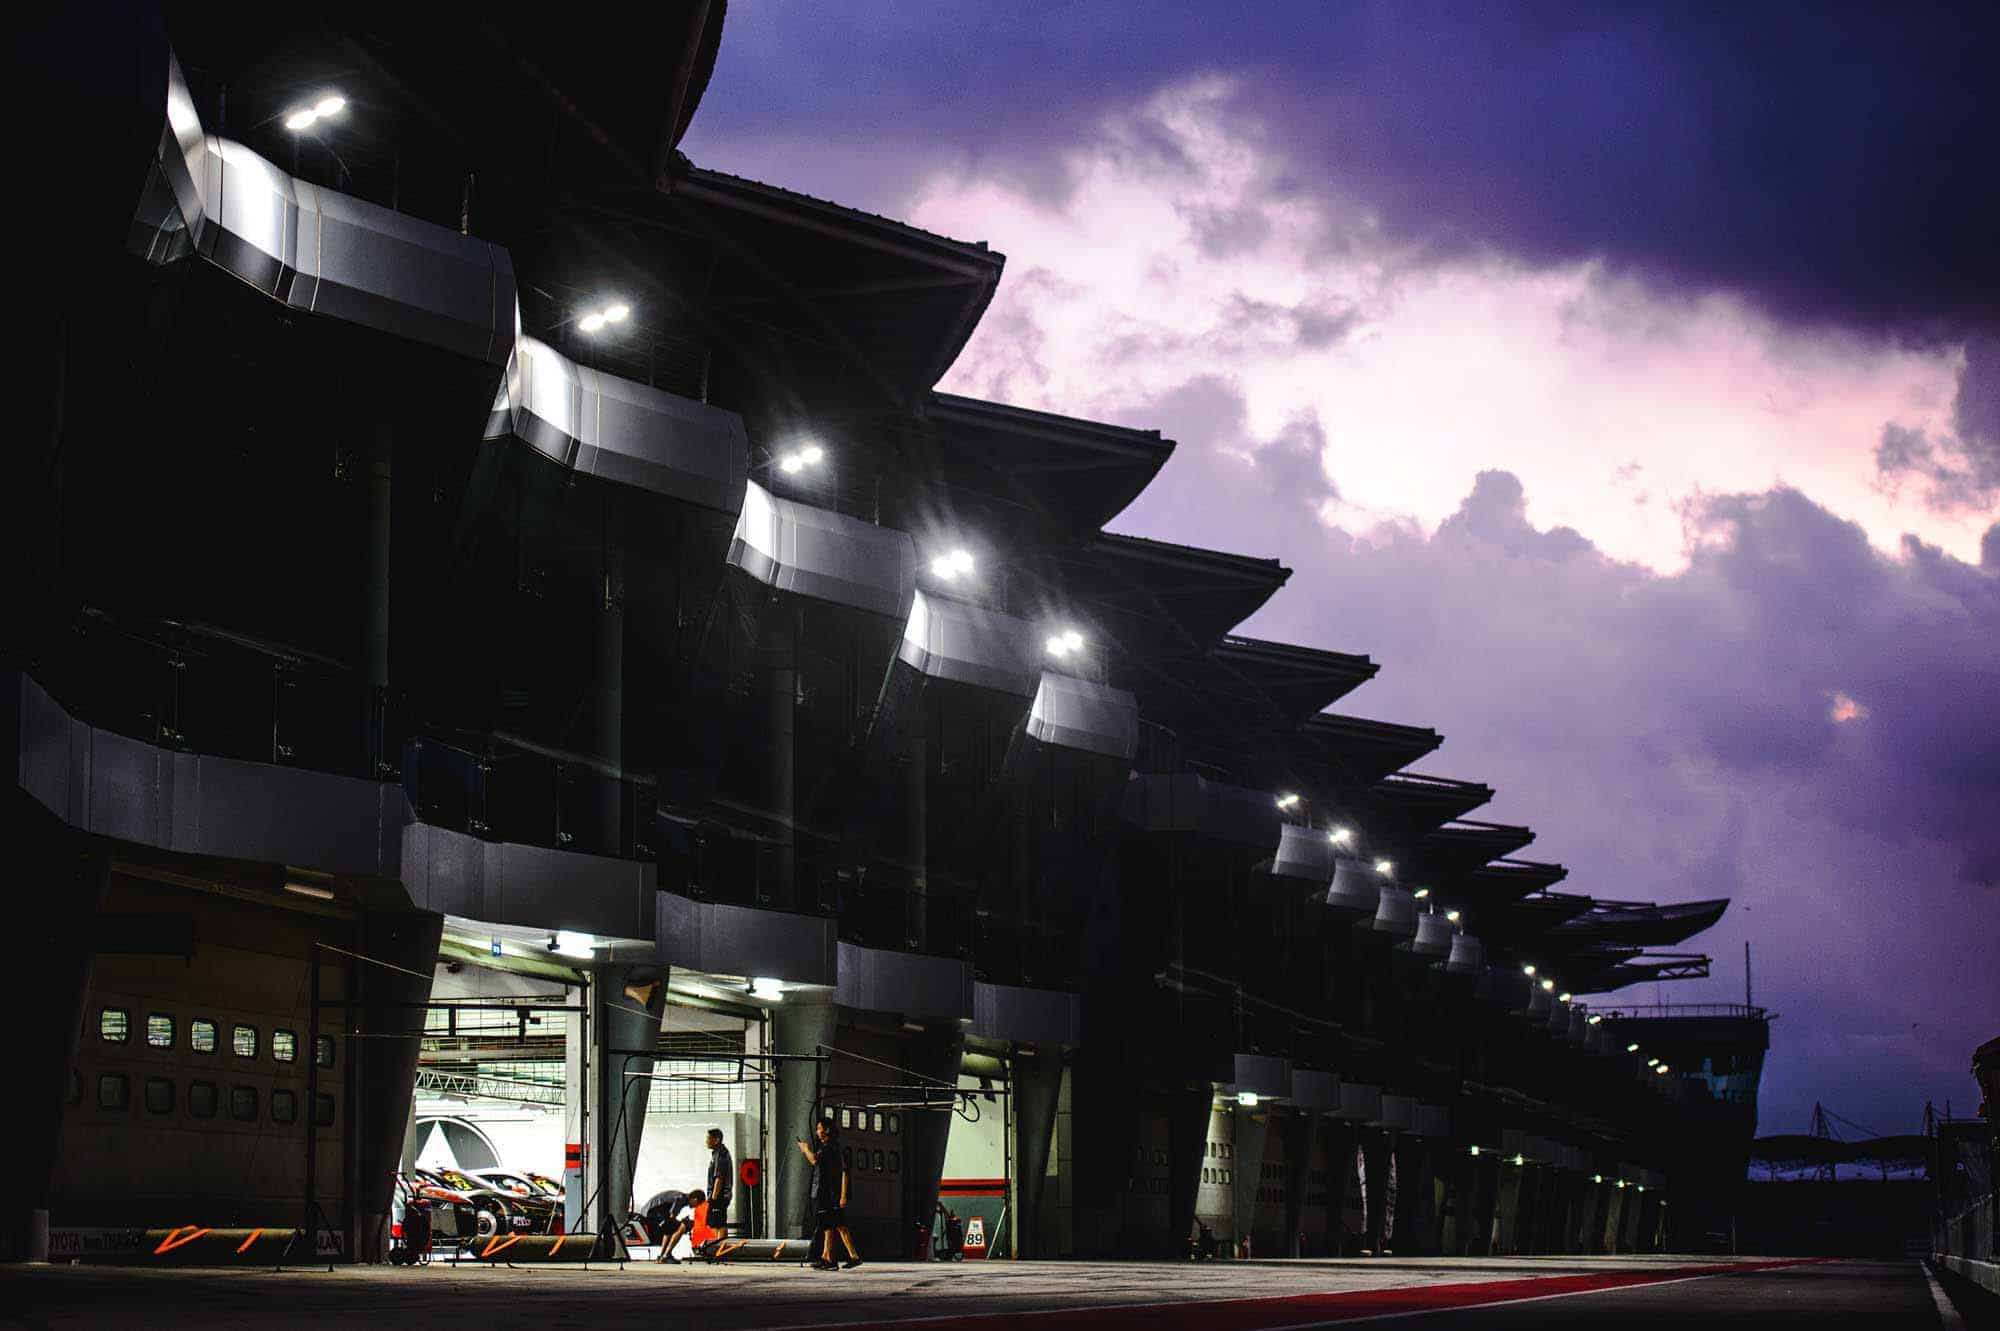 Sepang International Circuit 04 - Home